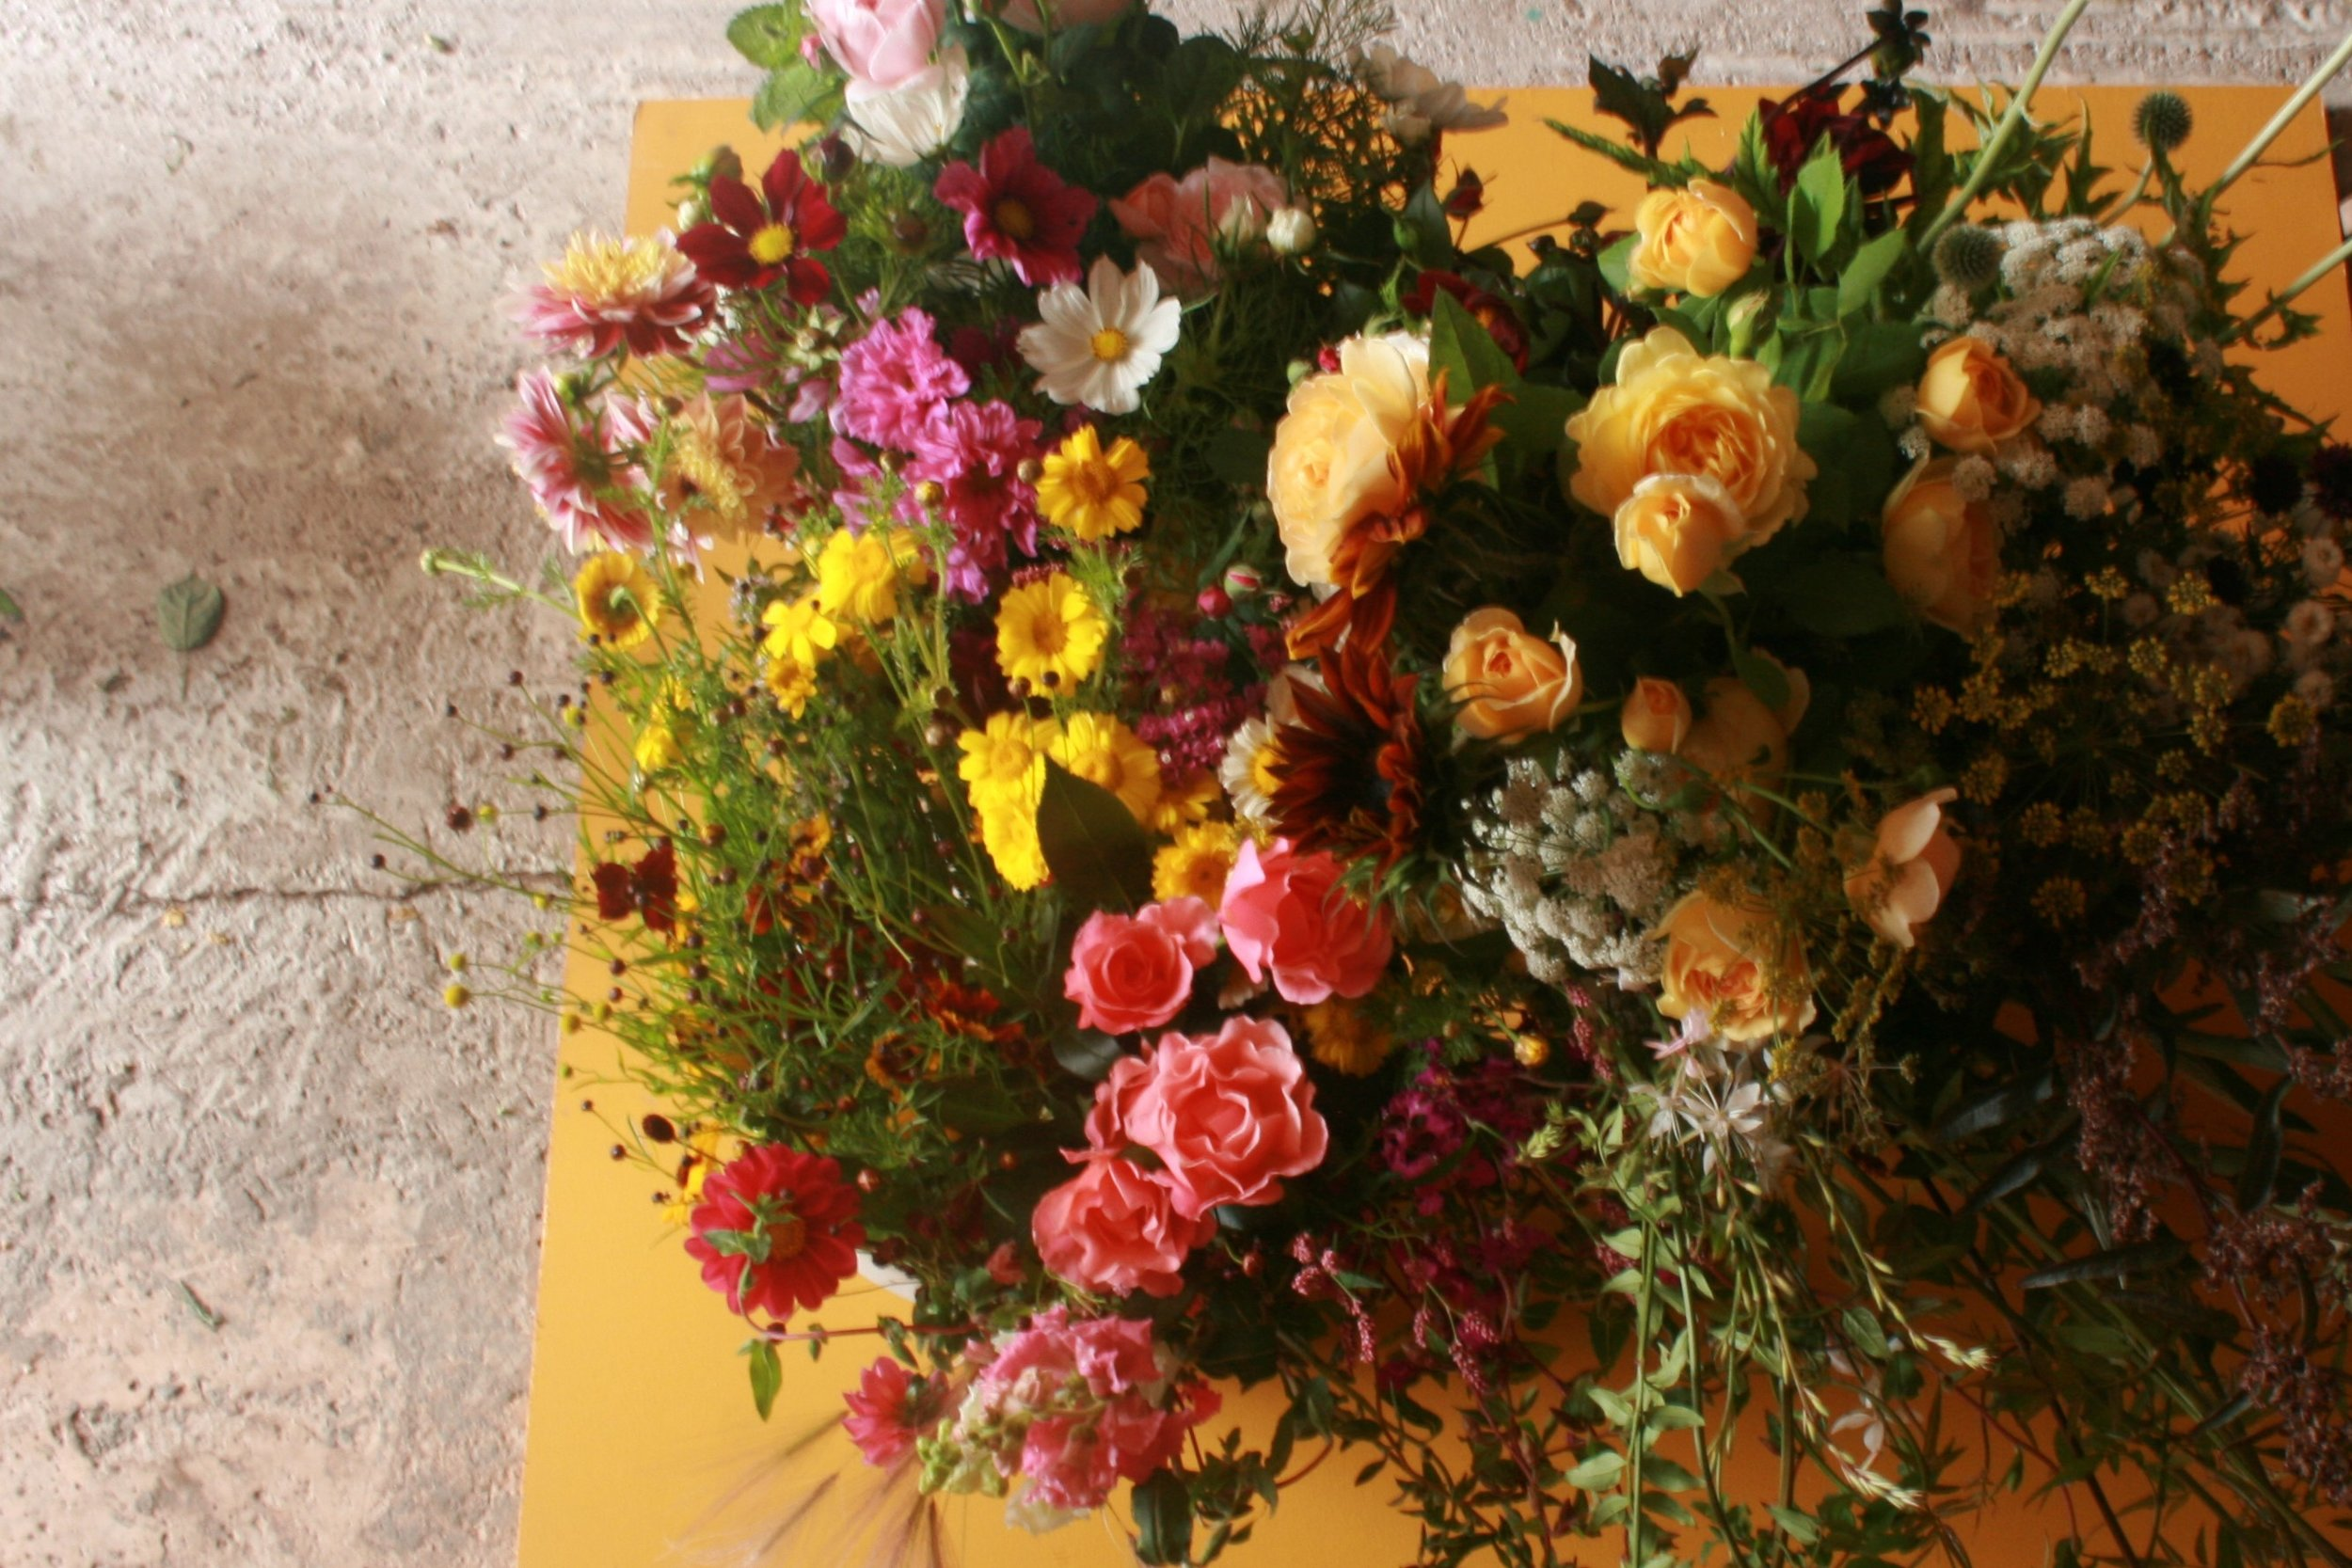 Two buckets of flowers that meet the quality criteria